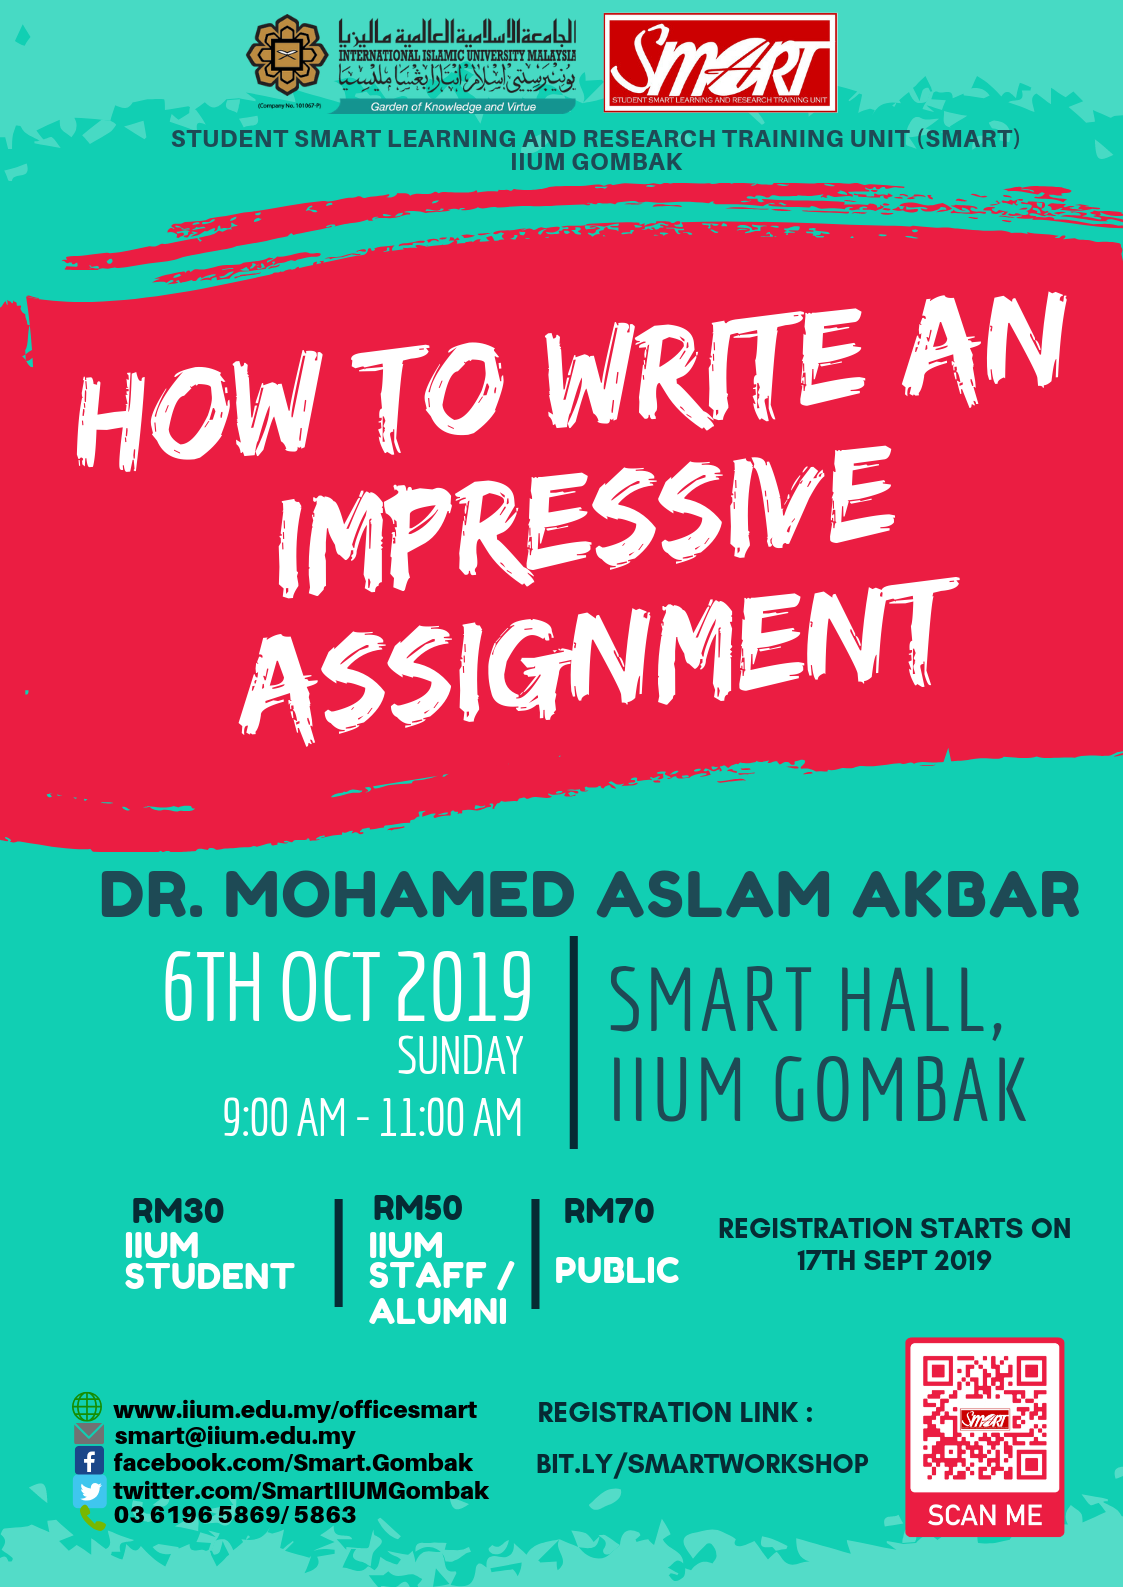 SEM 1, 19/20 - WORKSHOP - HOW TO WRITE AN IMPRESSIVE ASSIGNMENT